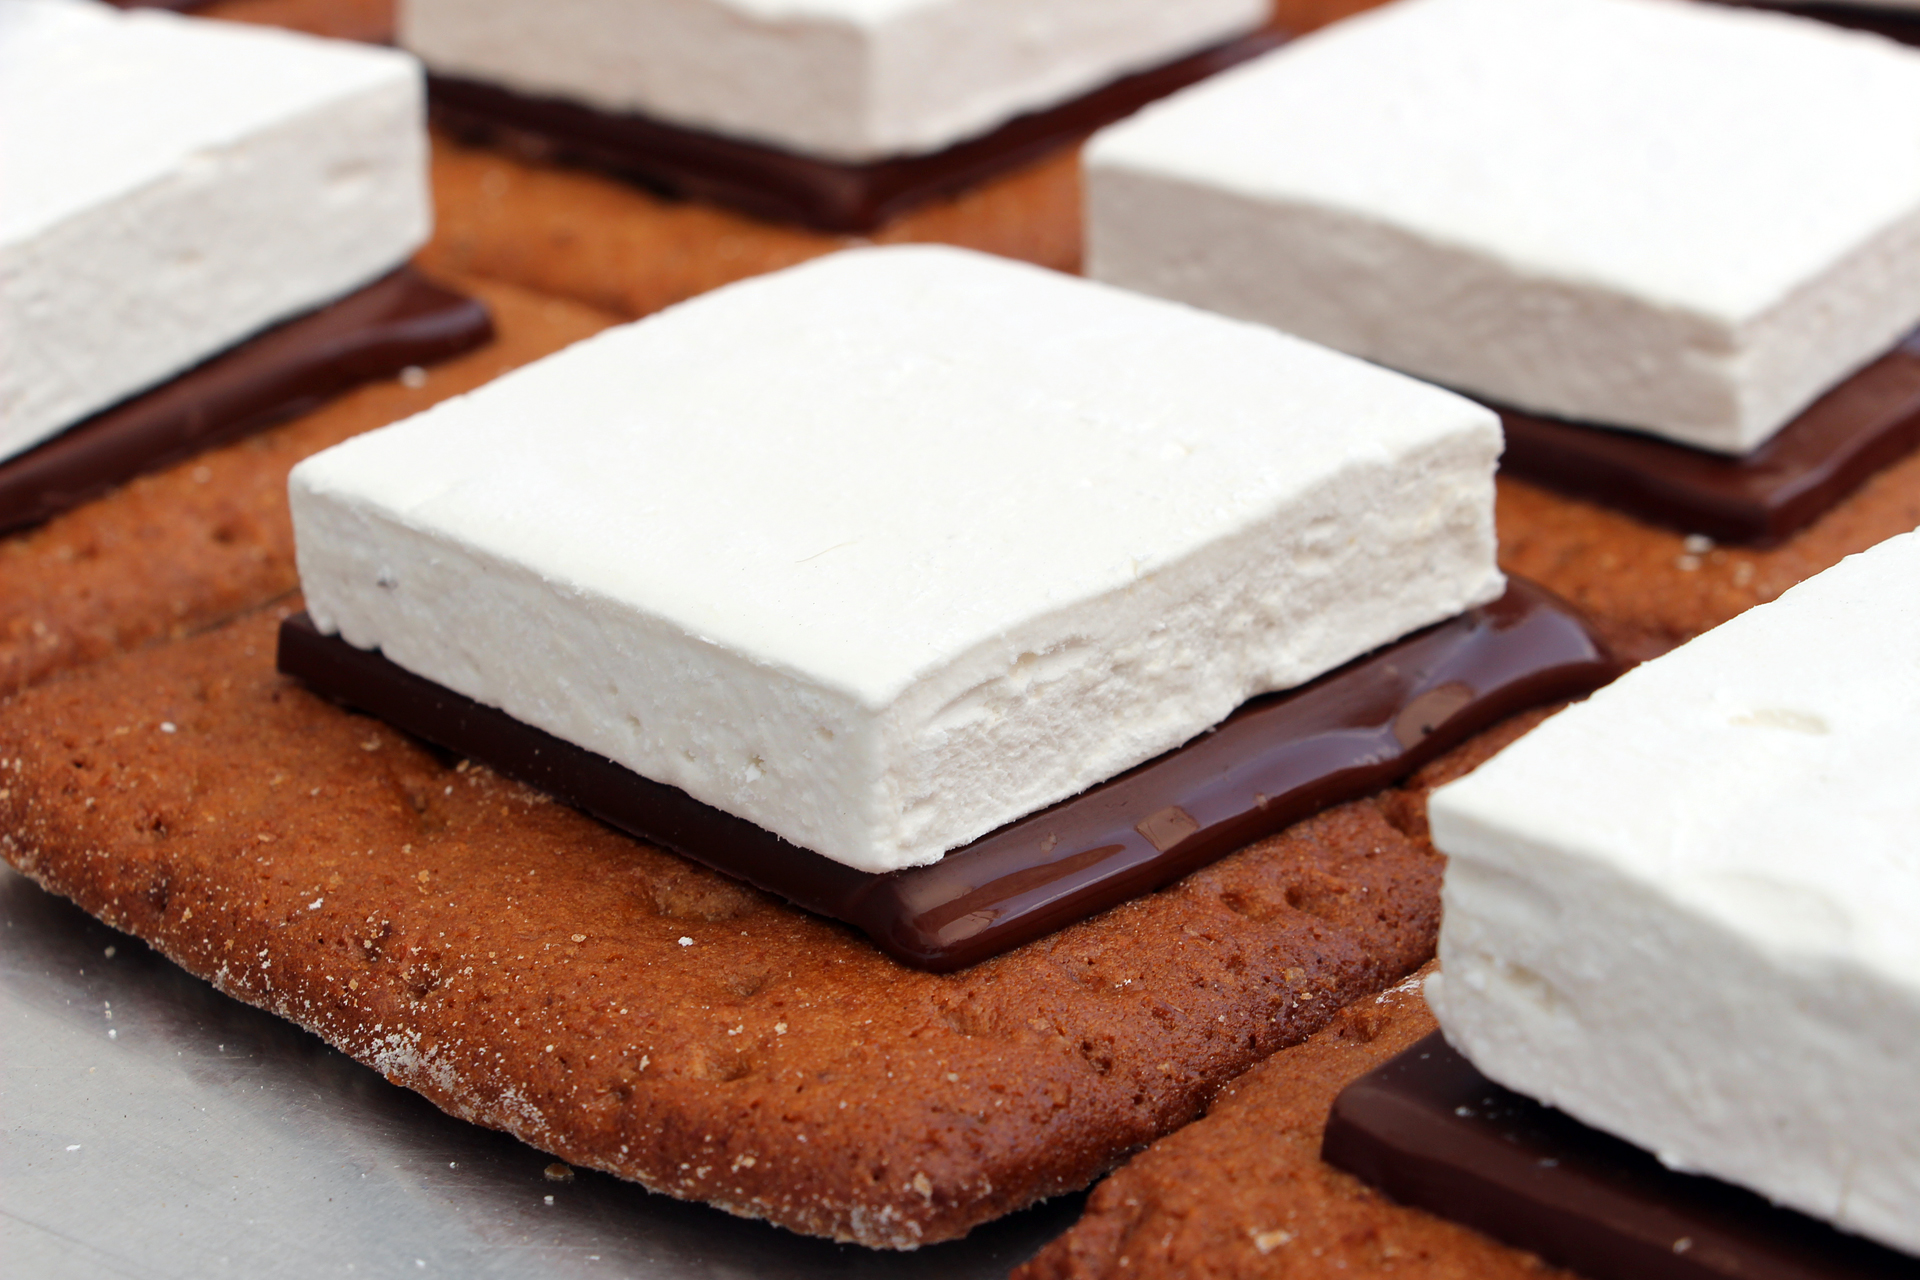 Charles Chocolates S'mores